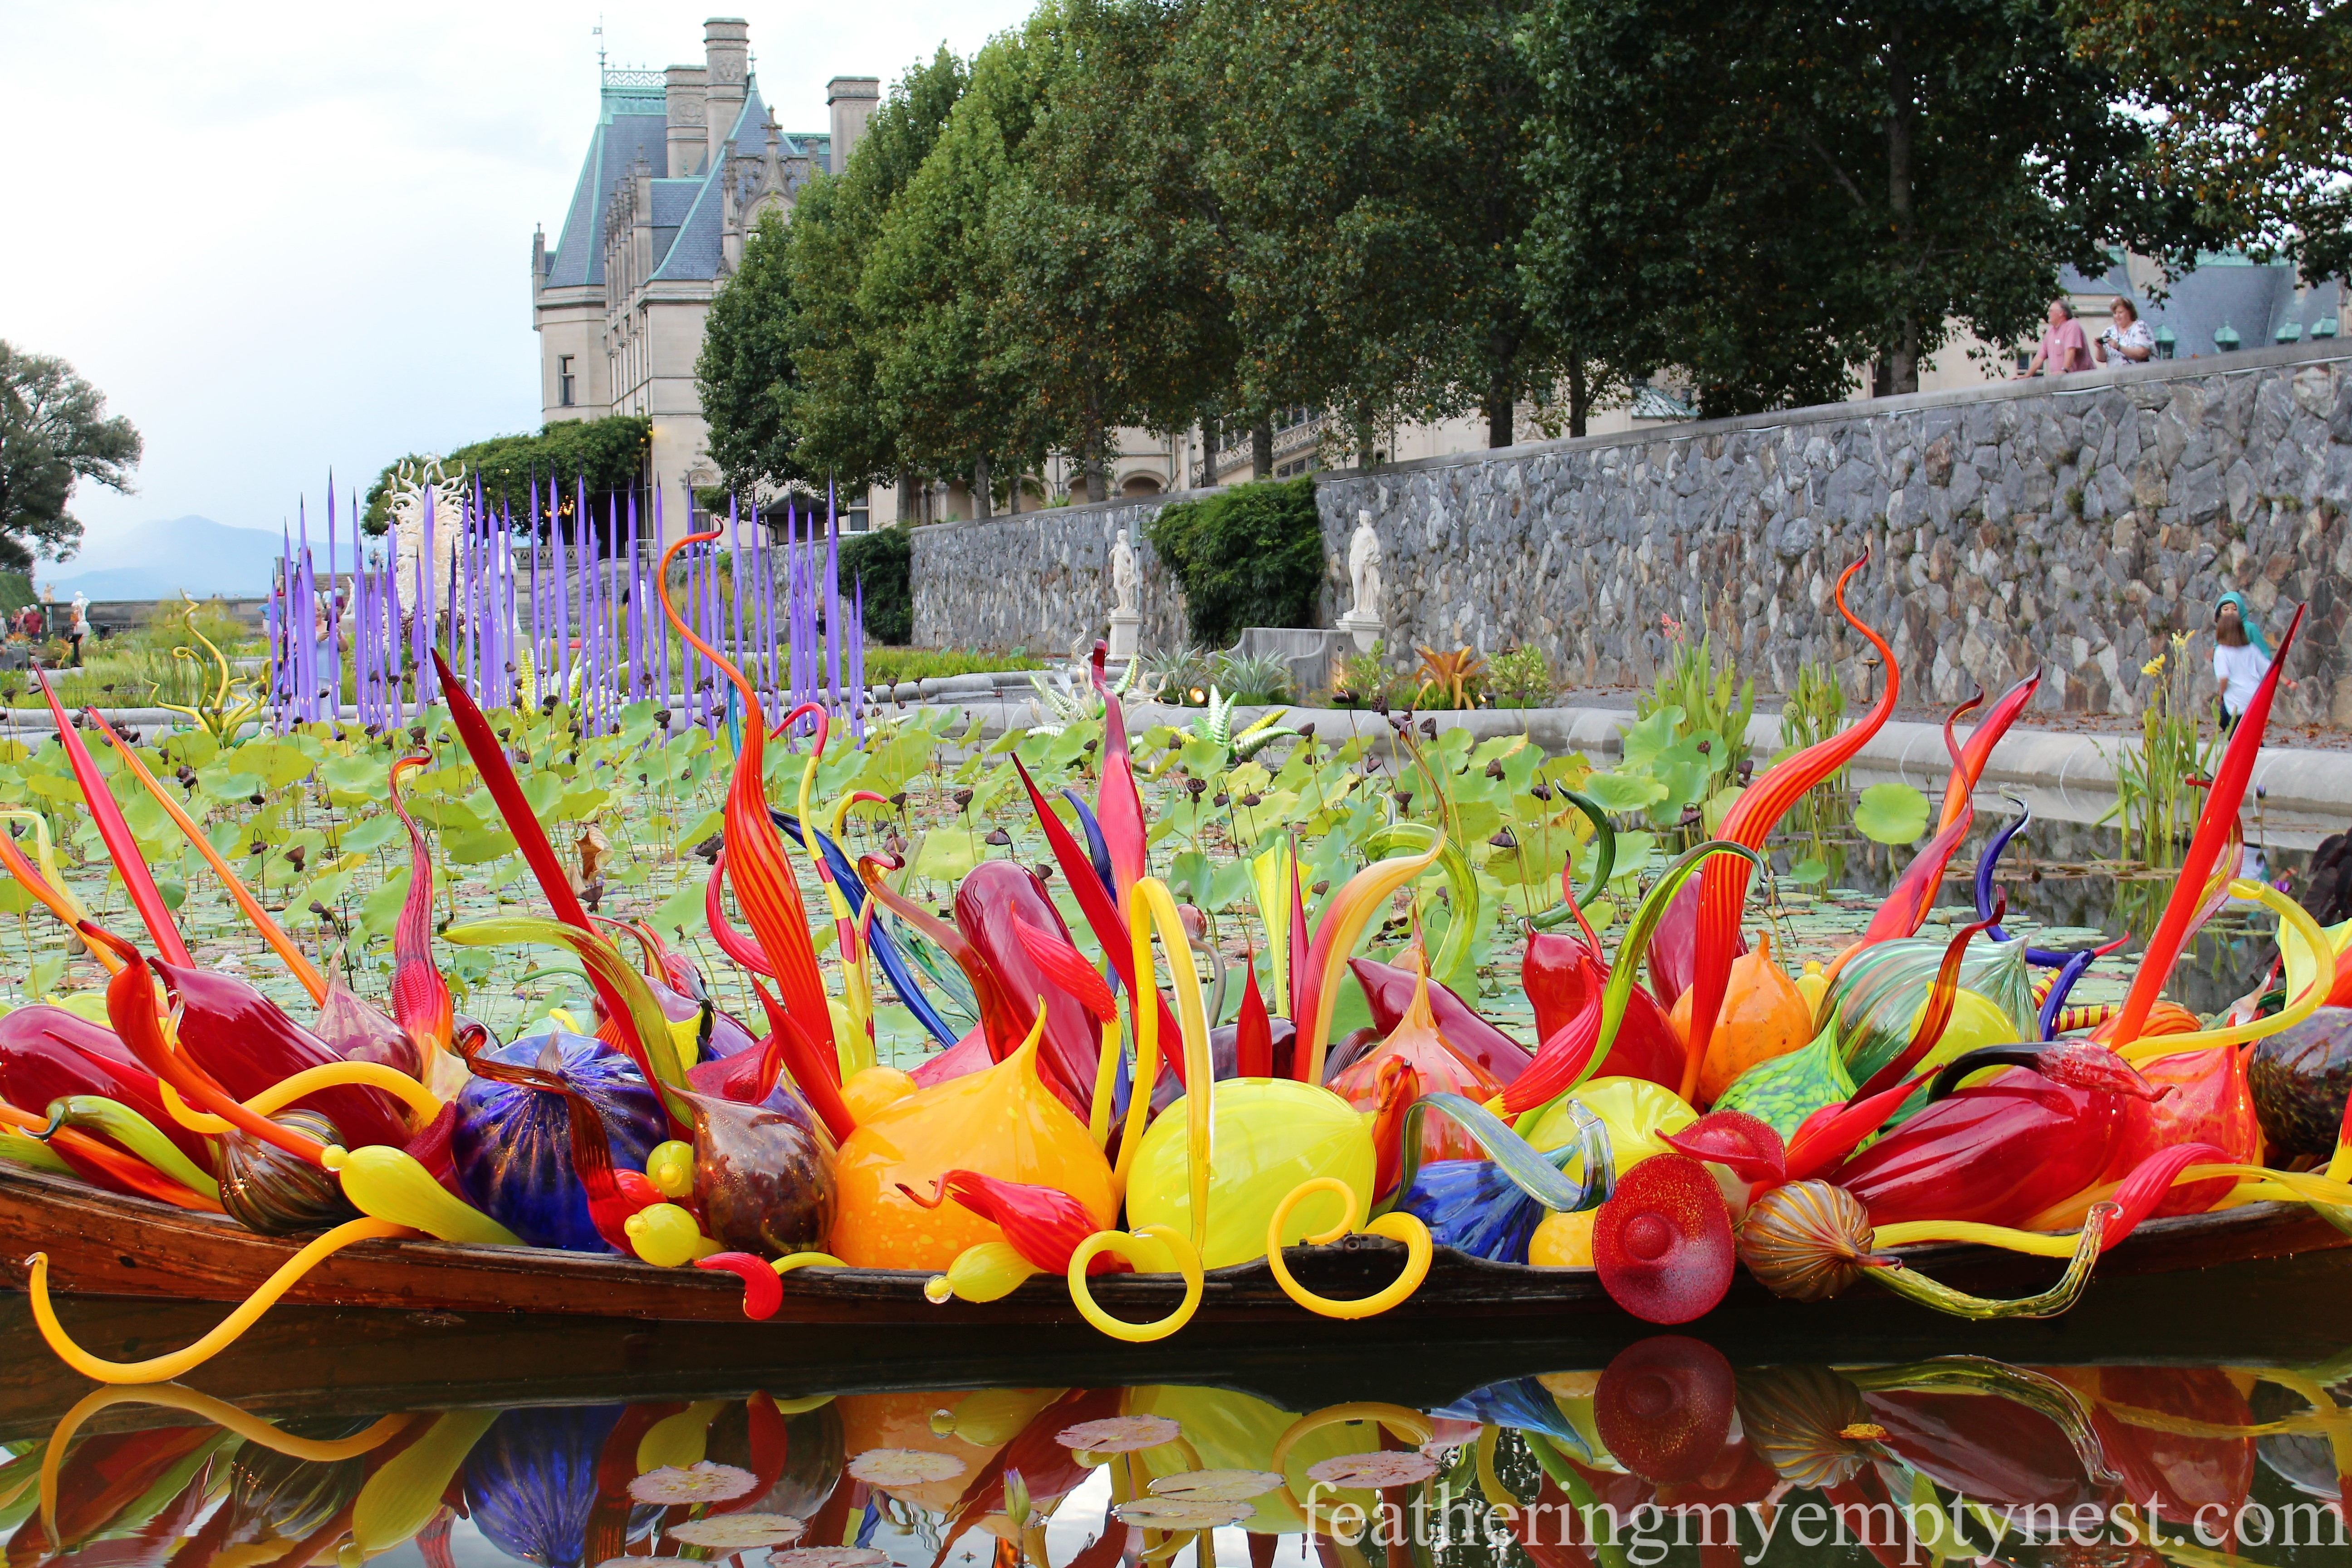 Chihuly glass sculpture Fiori Boat in the Italian Garden at Biltmore --Chihuly At Night At The Biltmore